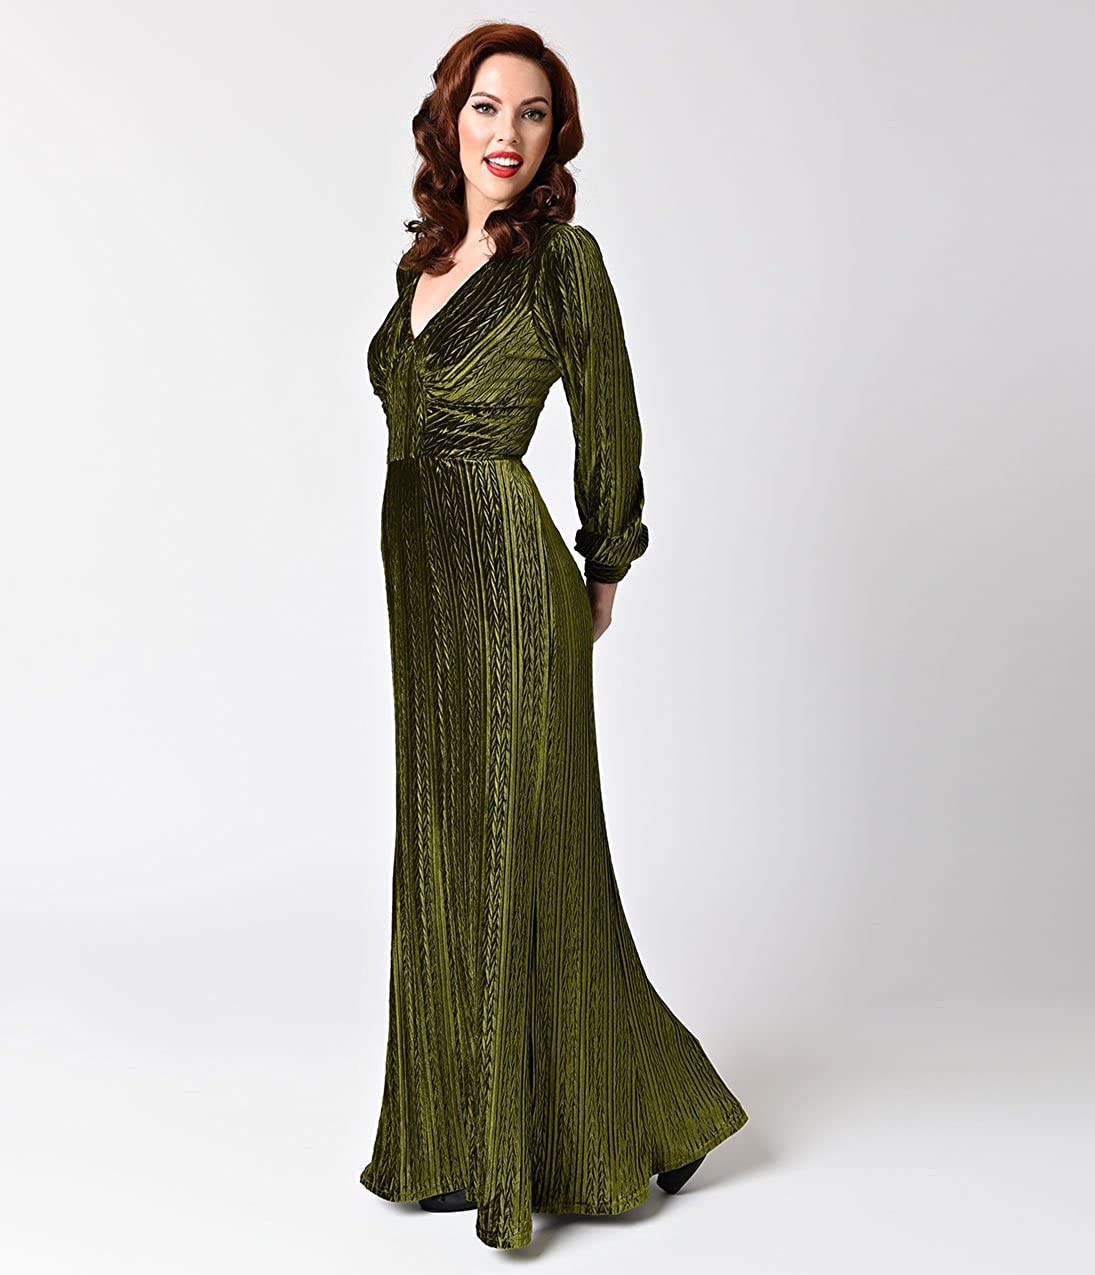 f3ab71f5701d Unique Vintage Voodoo Vixen Olive Green Velvet Long Sleeve Maxi Dress:  Amazon.ca: Clothing & Accessories